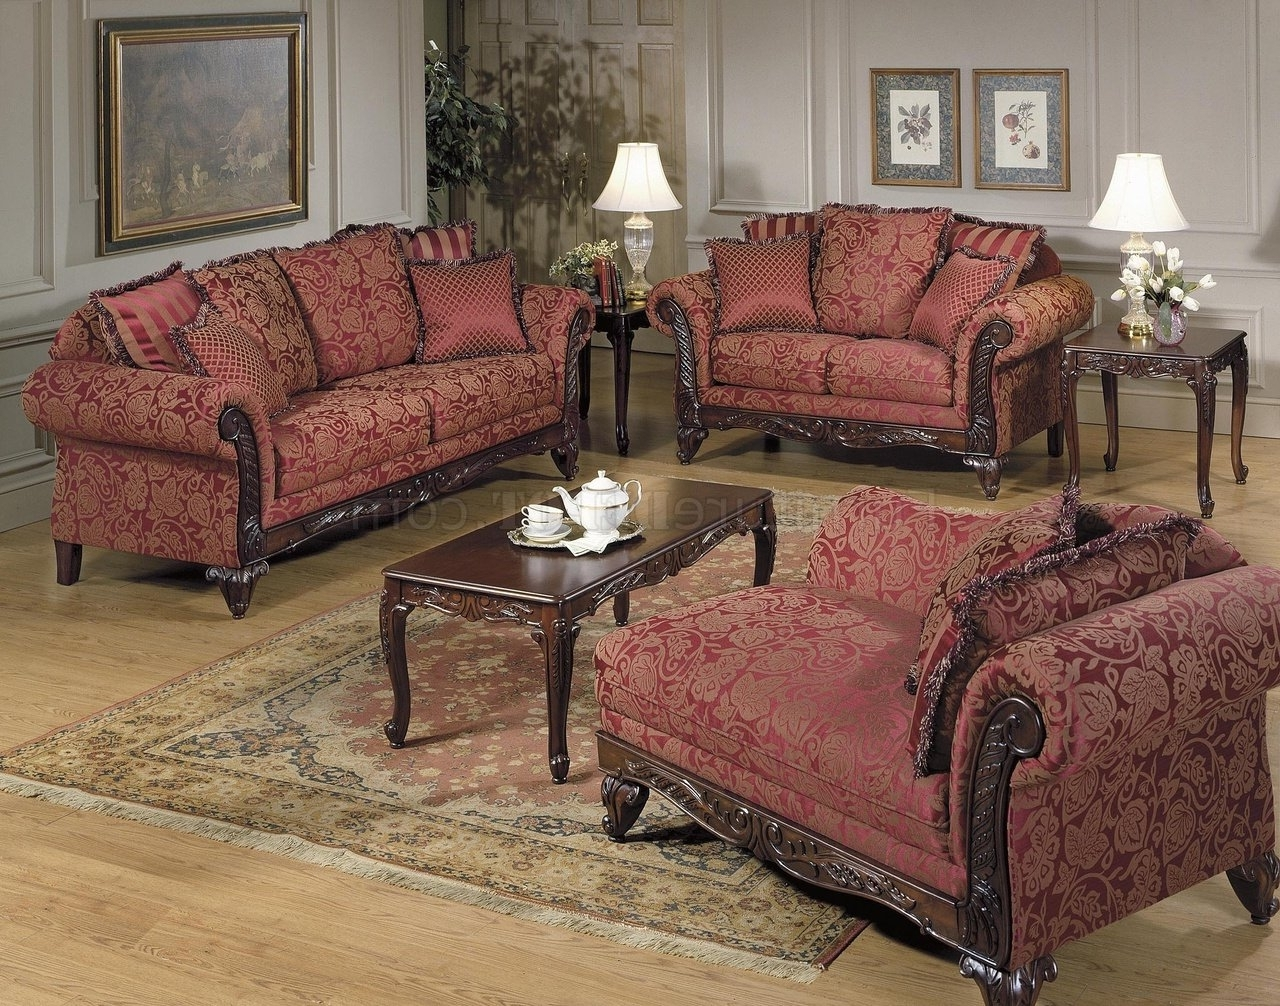 Best Sofa Deals Elegant Sofas Living Room Furniture Chairs Living With Fashionable Elegant Sofas And Chairs (View 4 of 20)